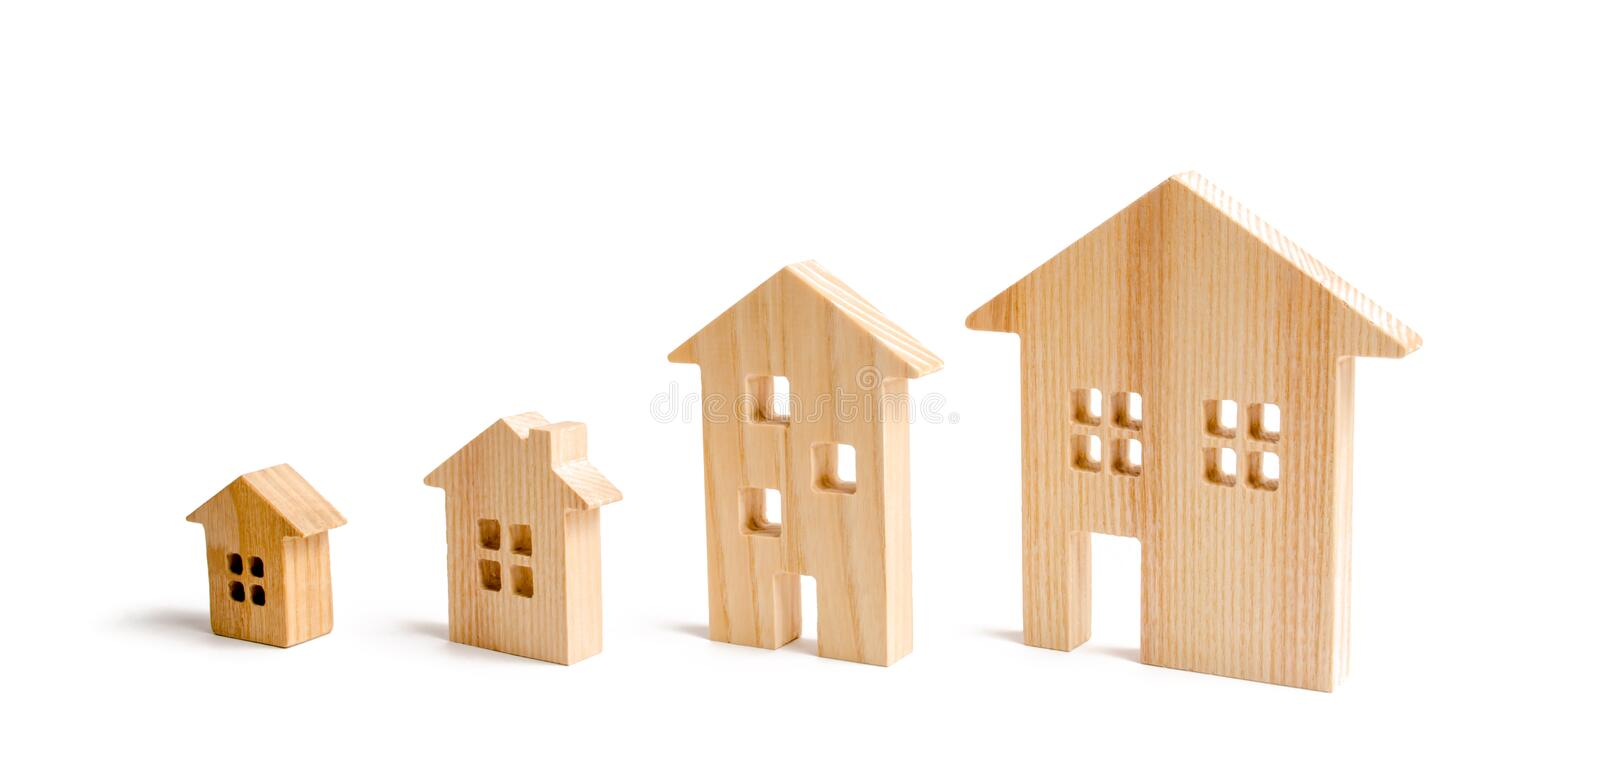 Four wooden houses stand in ascending order on a white background. Isolate The concept of increasing population density. And high-rise buildings. Agglomeration stock photos